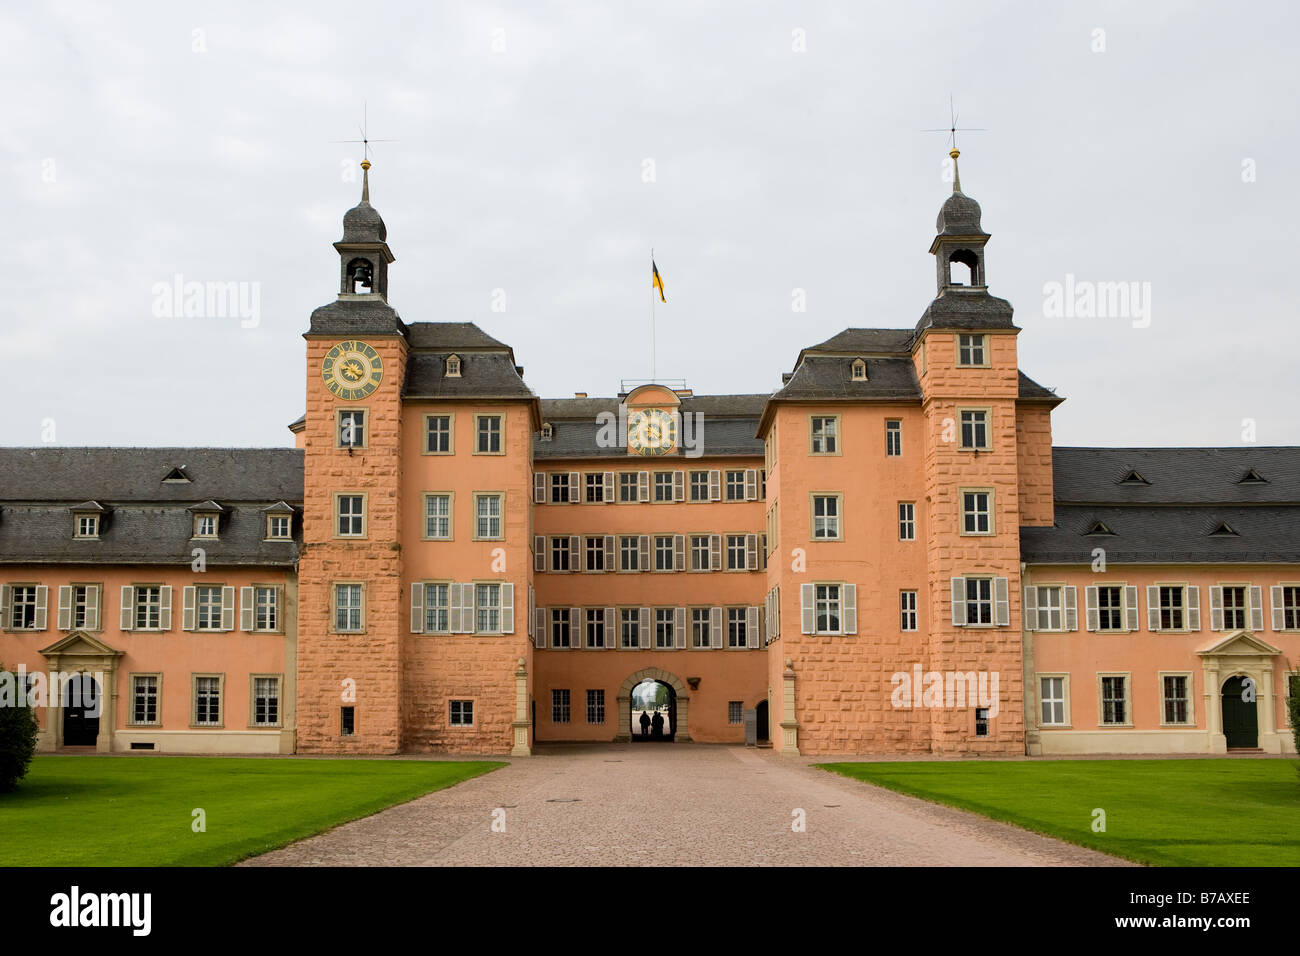 The castle Schwetzinger Schloss - Stock Image